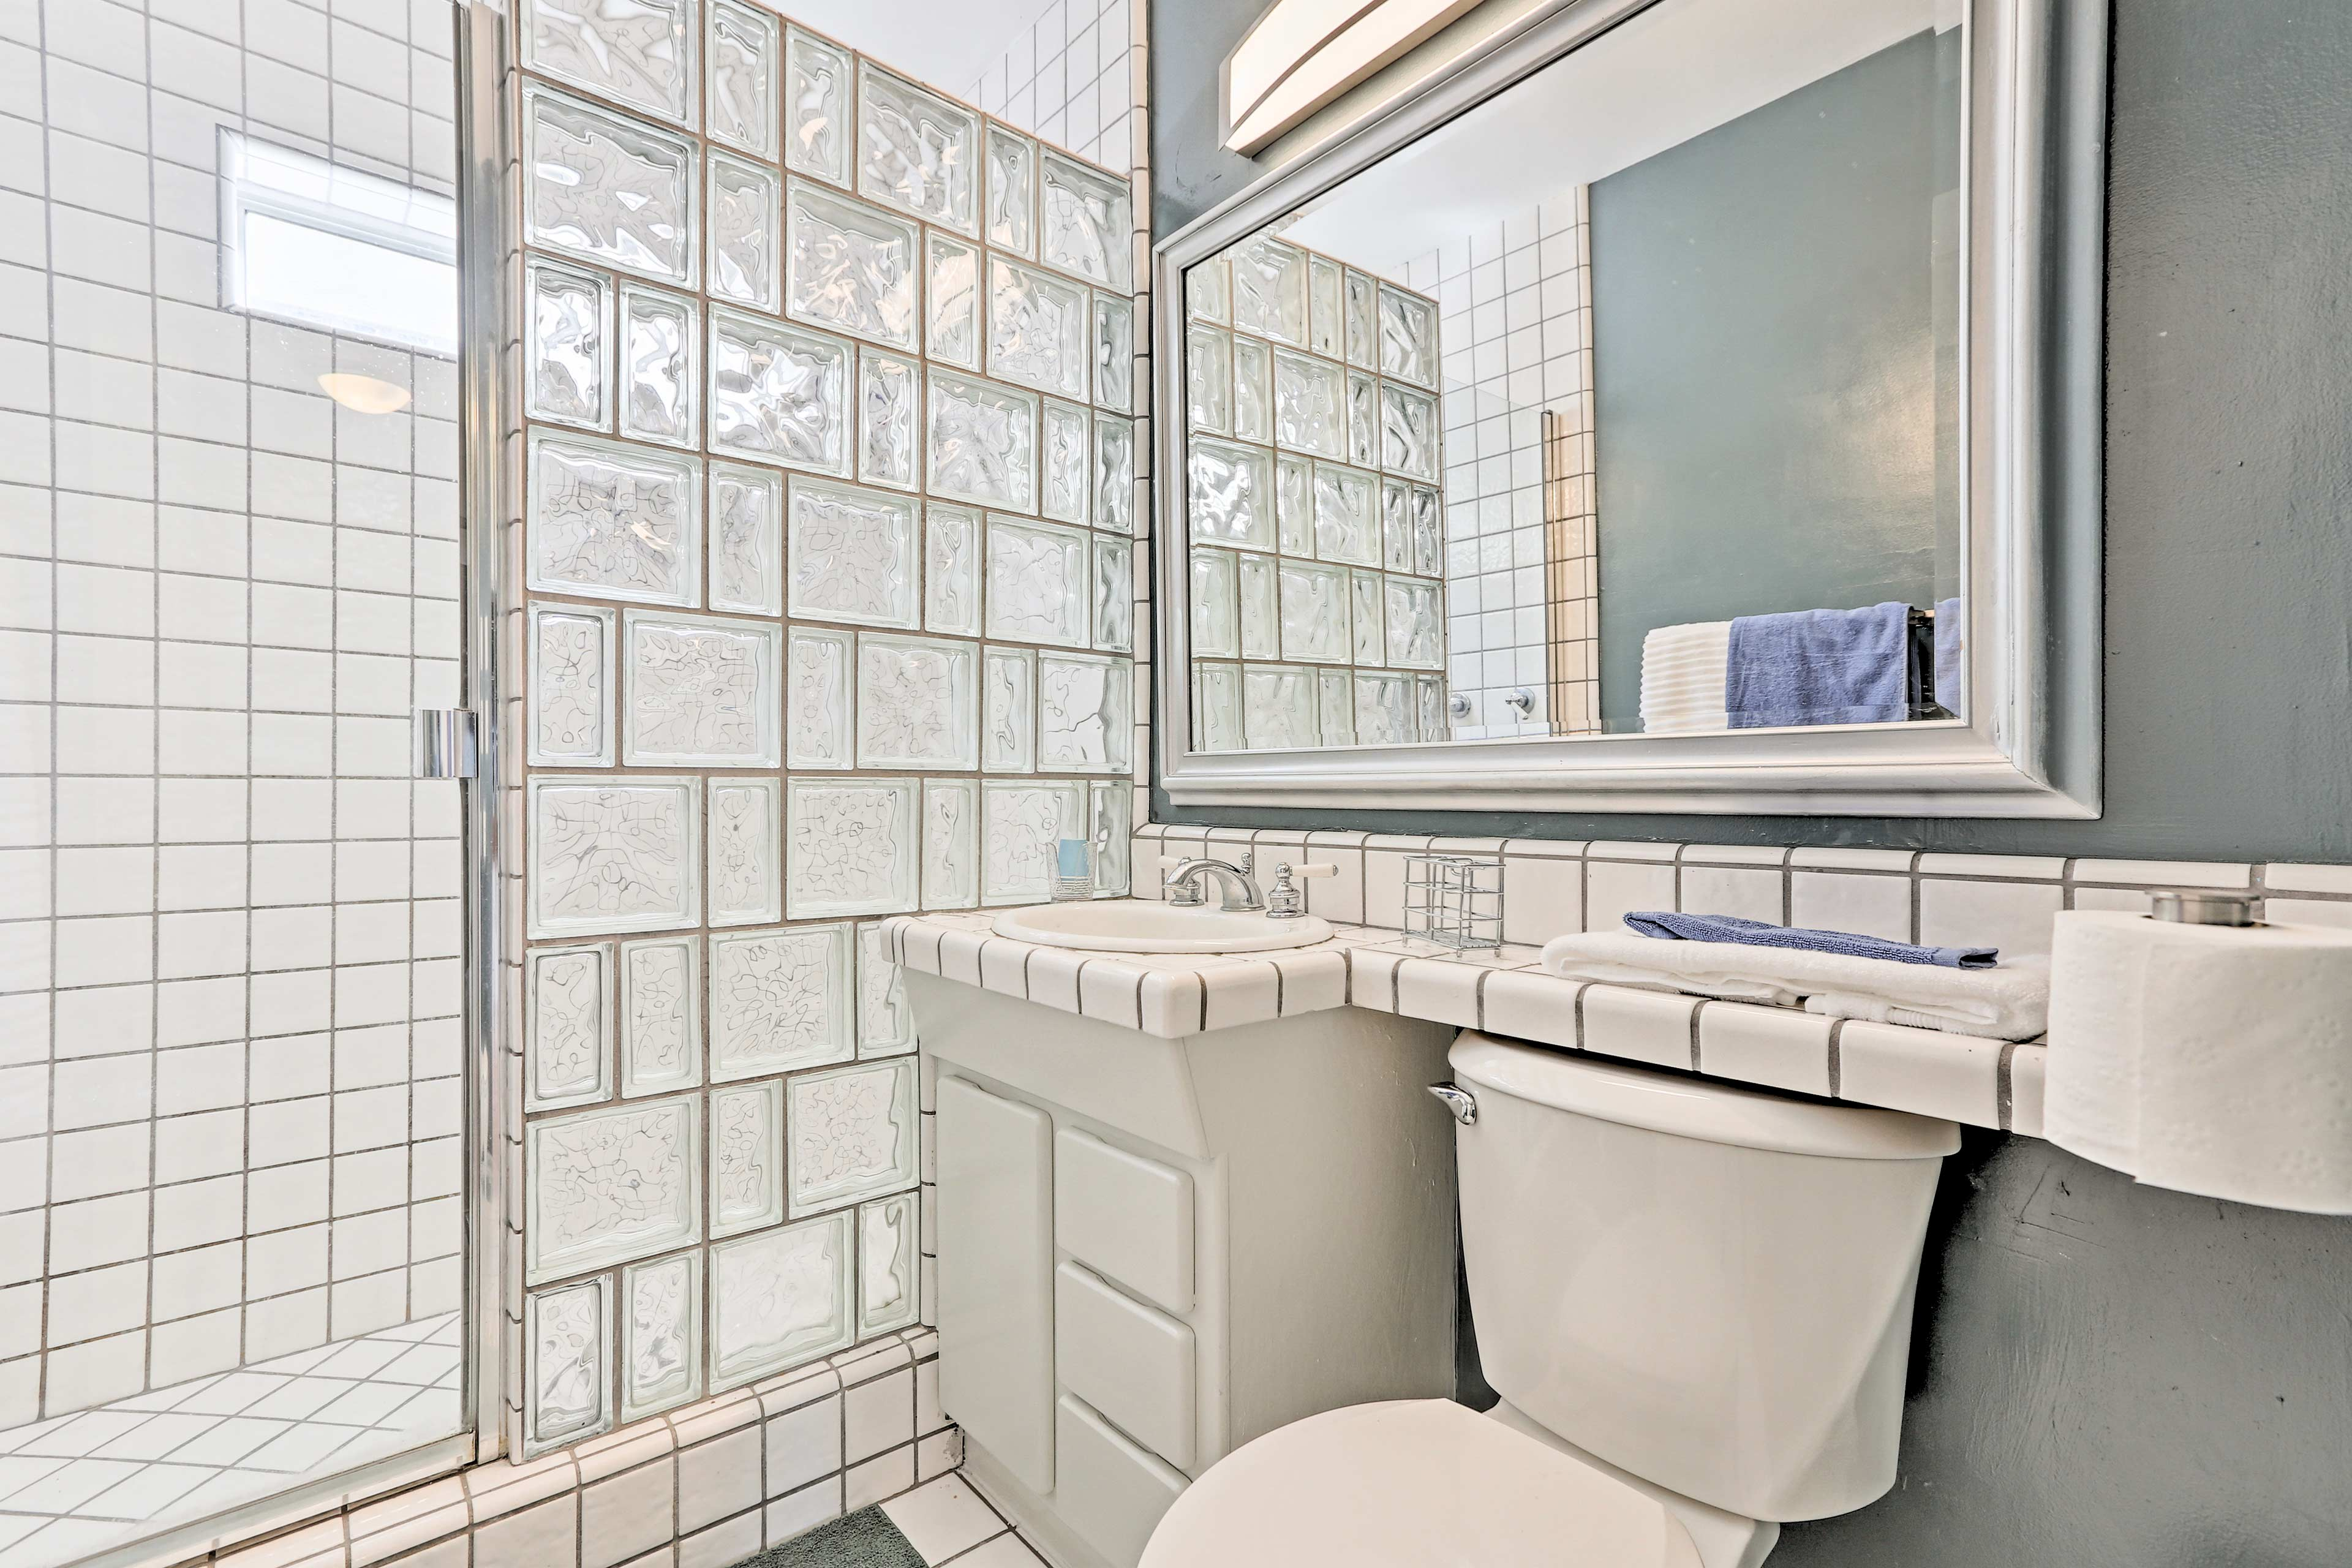 This pristine bathroom comes stocked with fresh, soft towels for guests' comfort.